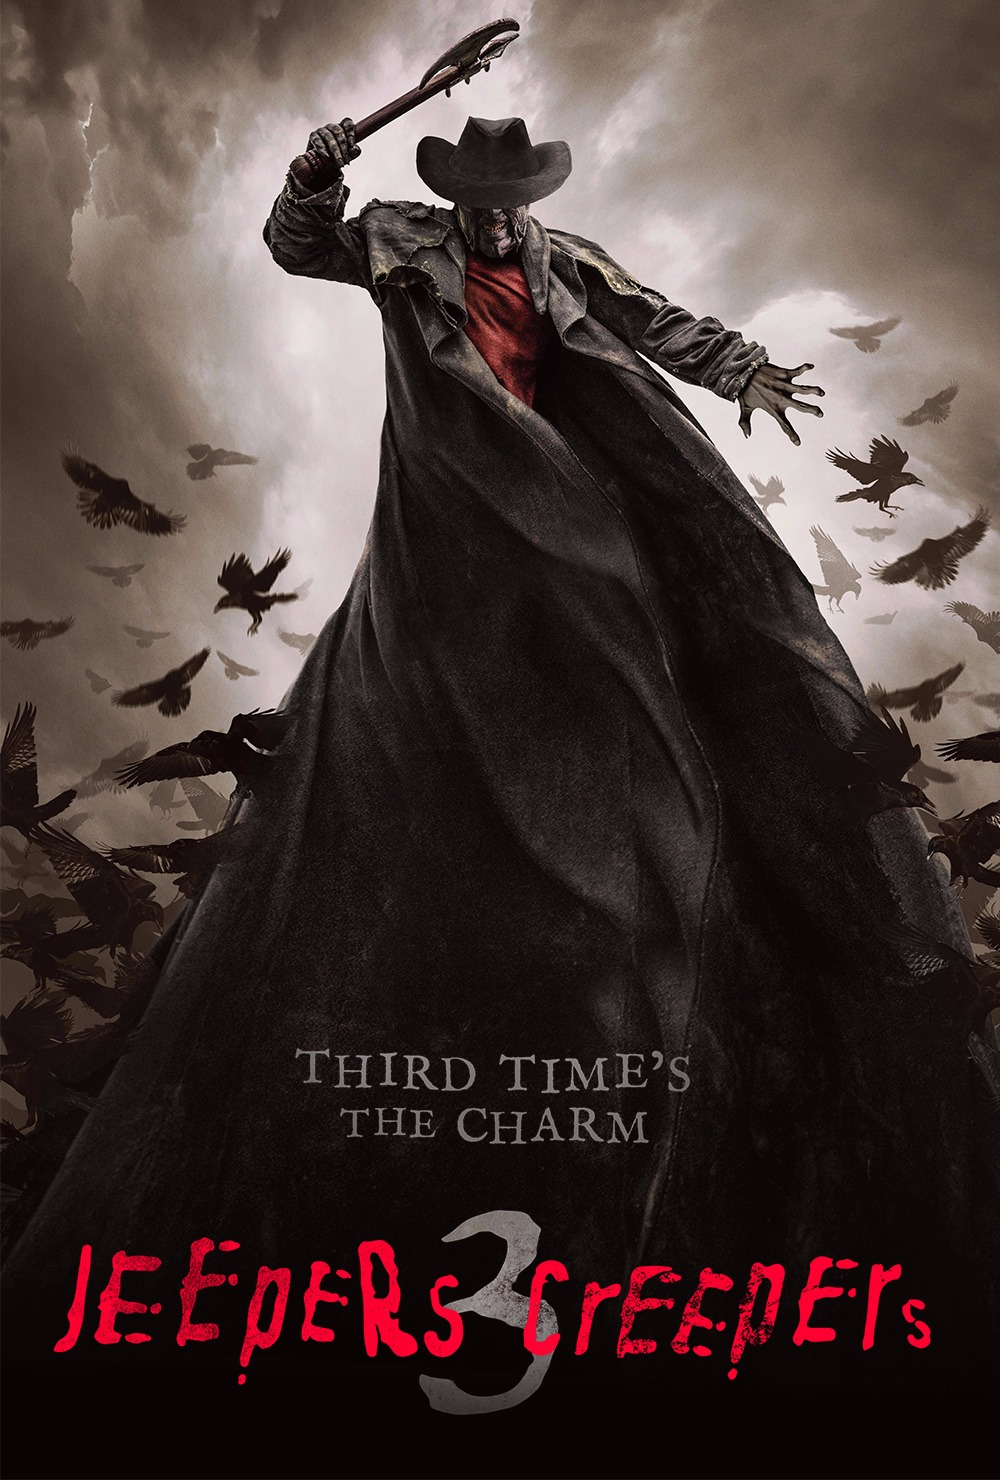 "The Creeper looms large as he raises his axe above his head, his coat flapping around him as it takes over the lower half of the frame. The tagline says ""Third time's the charm"""